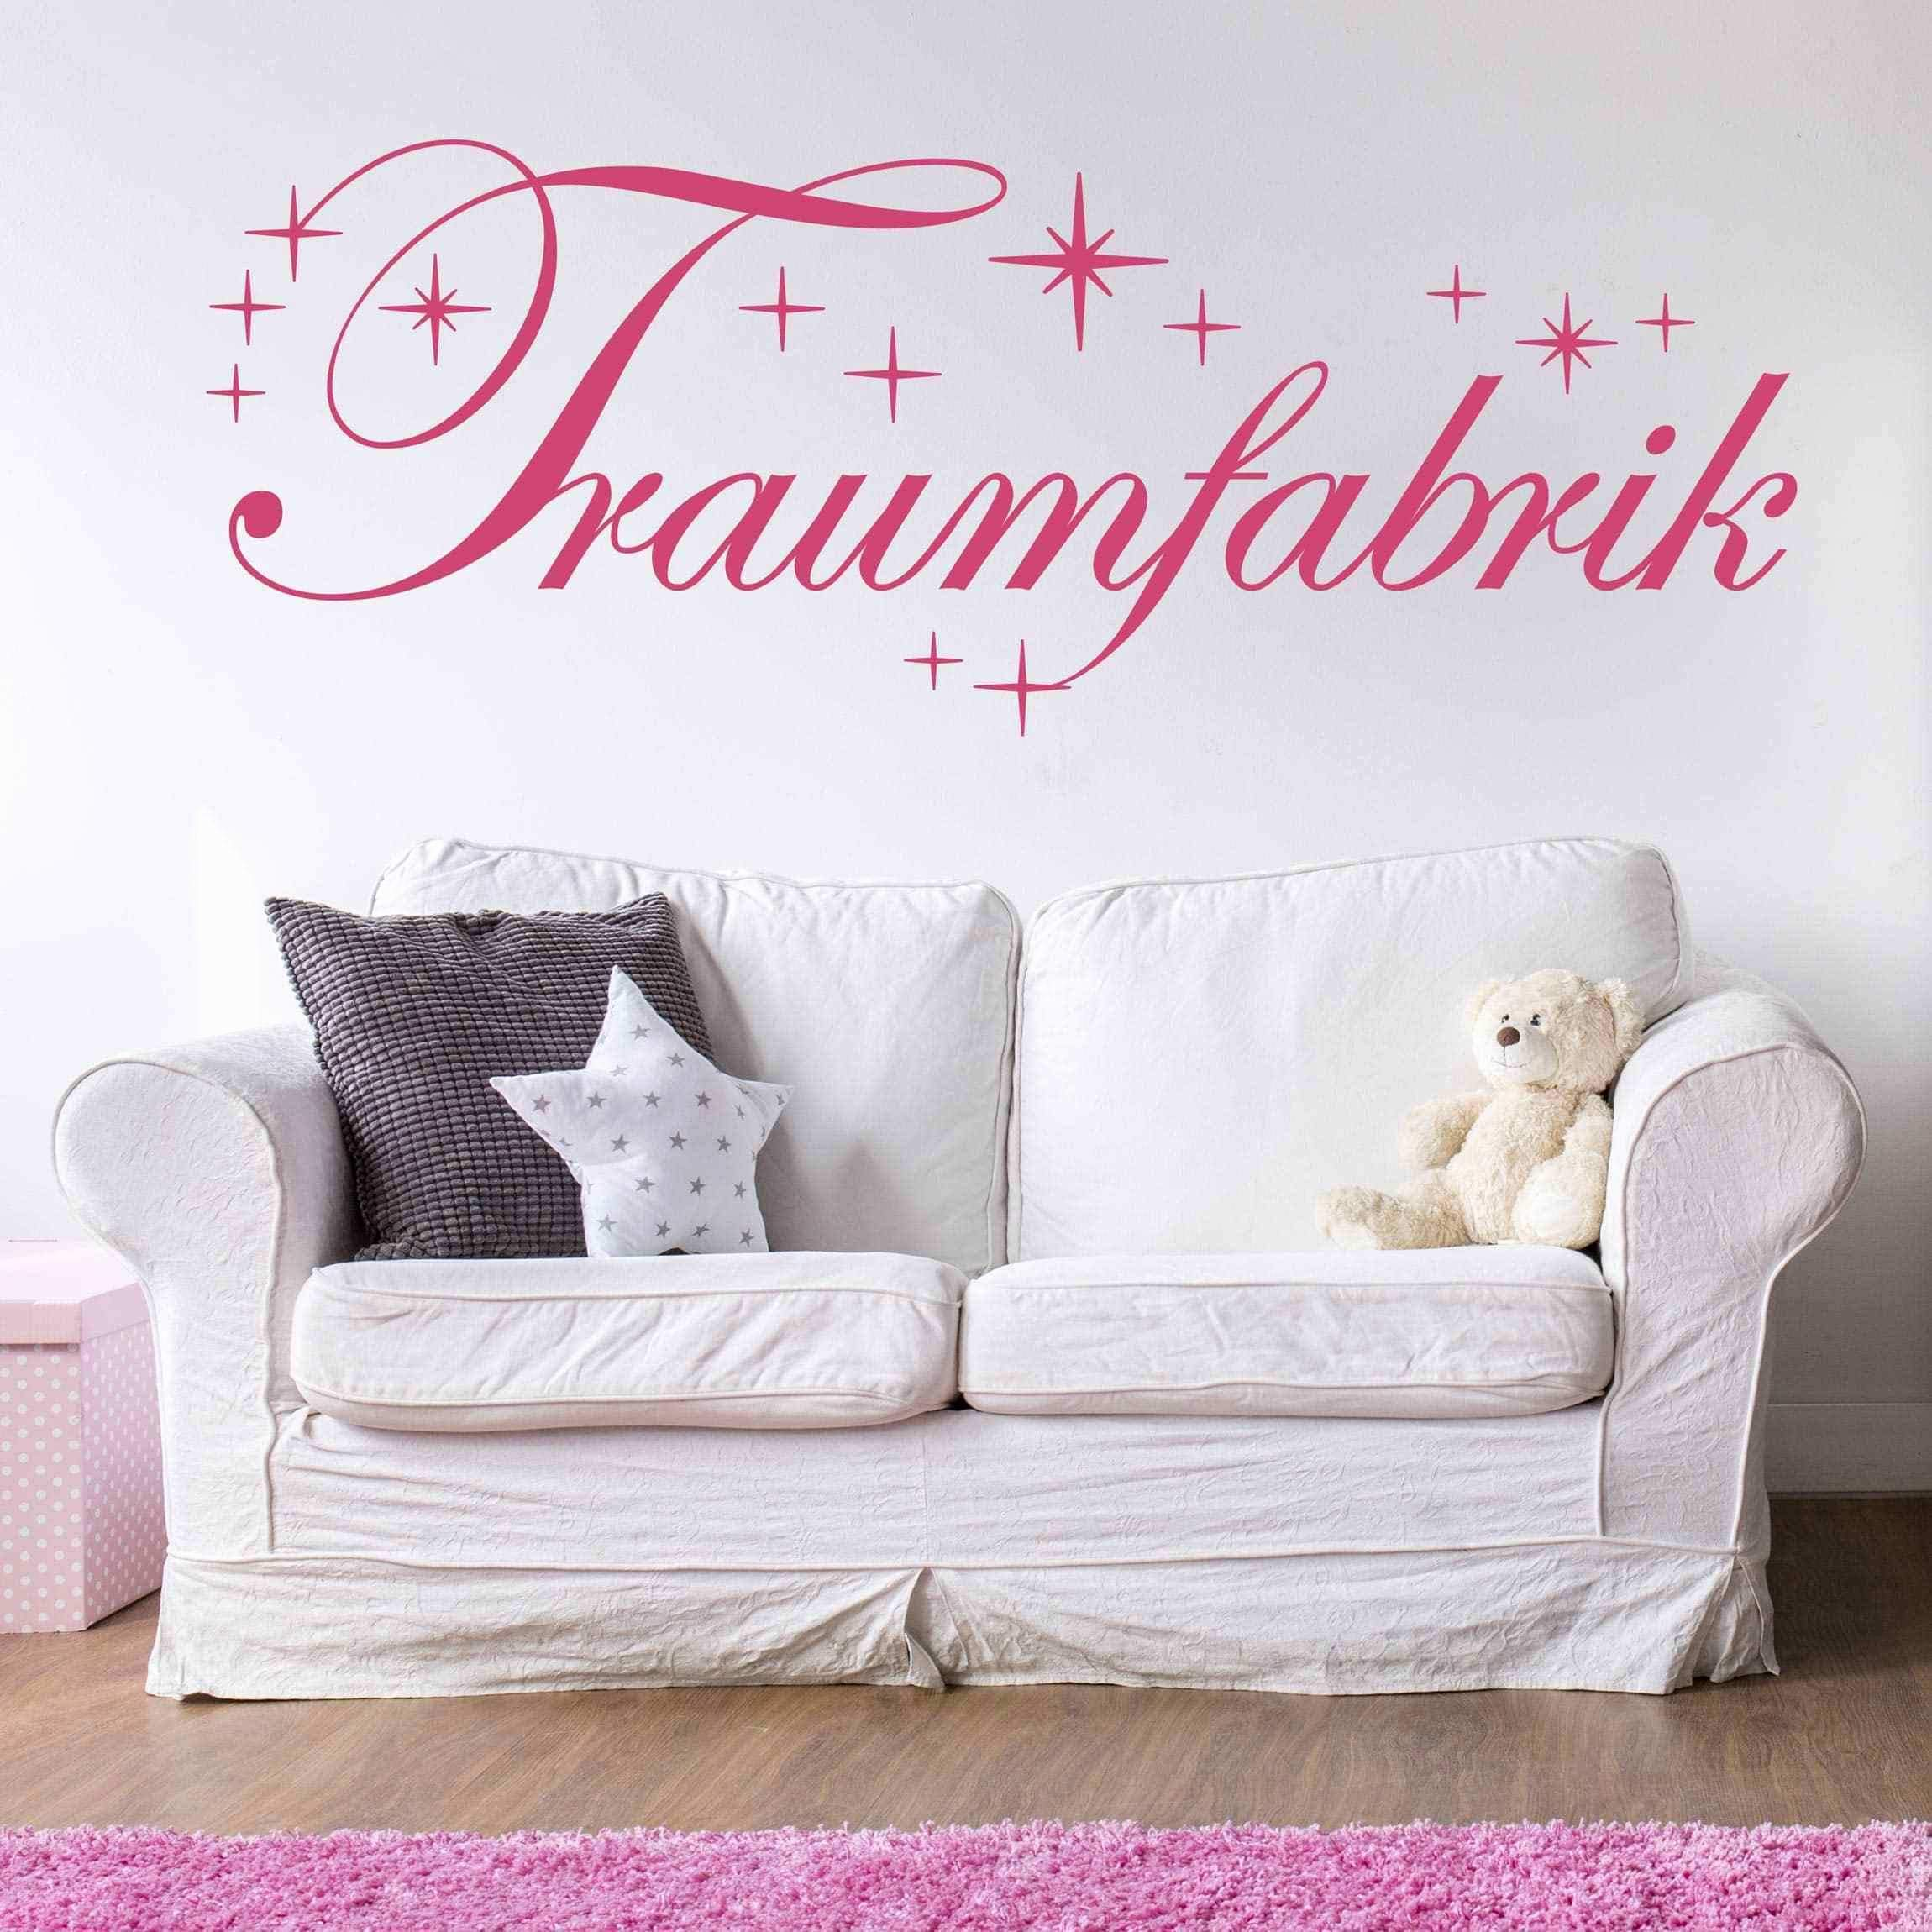 Full Size of Wandtattoos Sprüche Selber Machen Wandtattoos Sprüche Und Zitate Wandtattoos Sprüche Esszimmer Wandtattoos Sprüche Zitate Schlafzimmer Küche Wandtattoo Sprüche